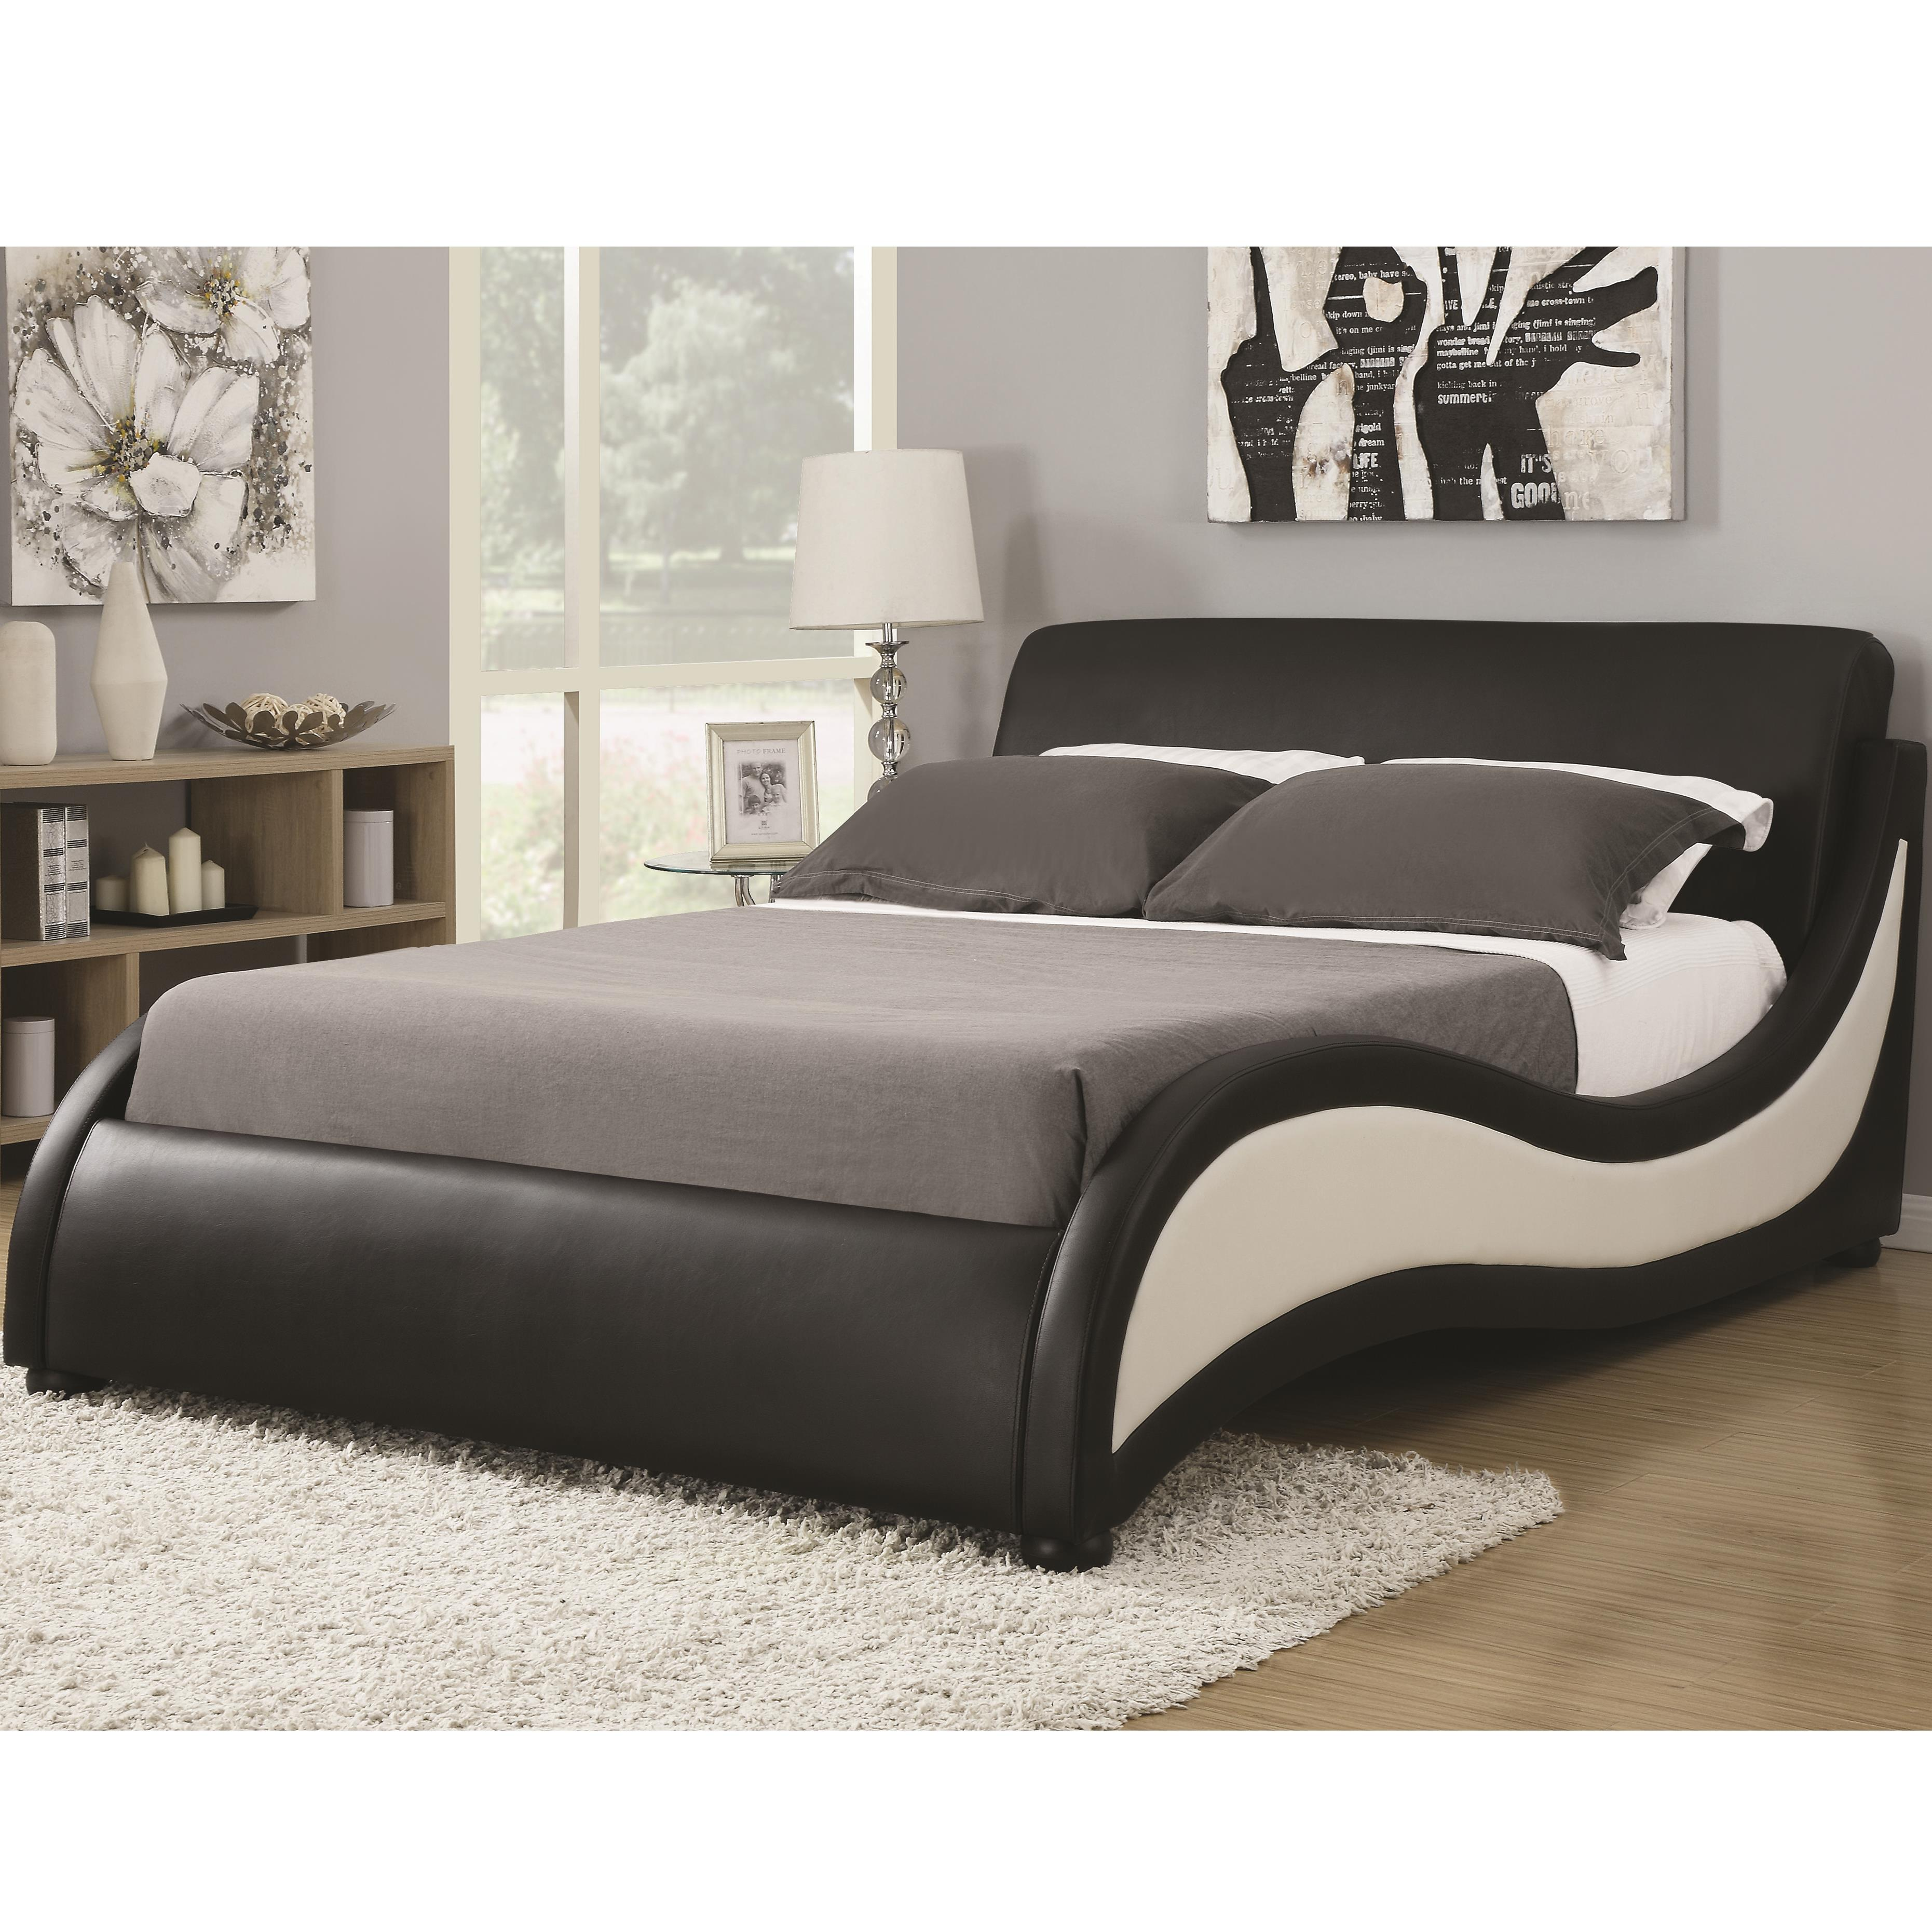 Coaster Upholstered Beds California King Niguel Modern Upholstered Bed Rife S Home Furniture Upholstered Beds